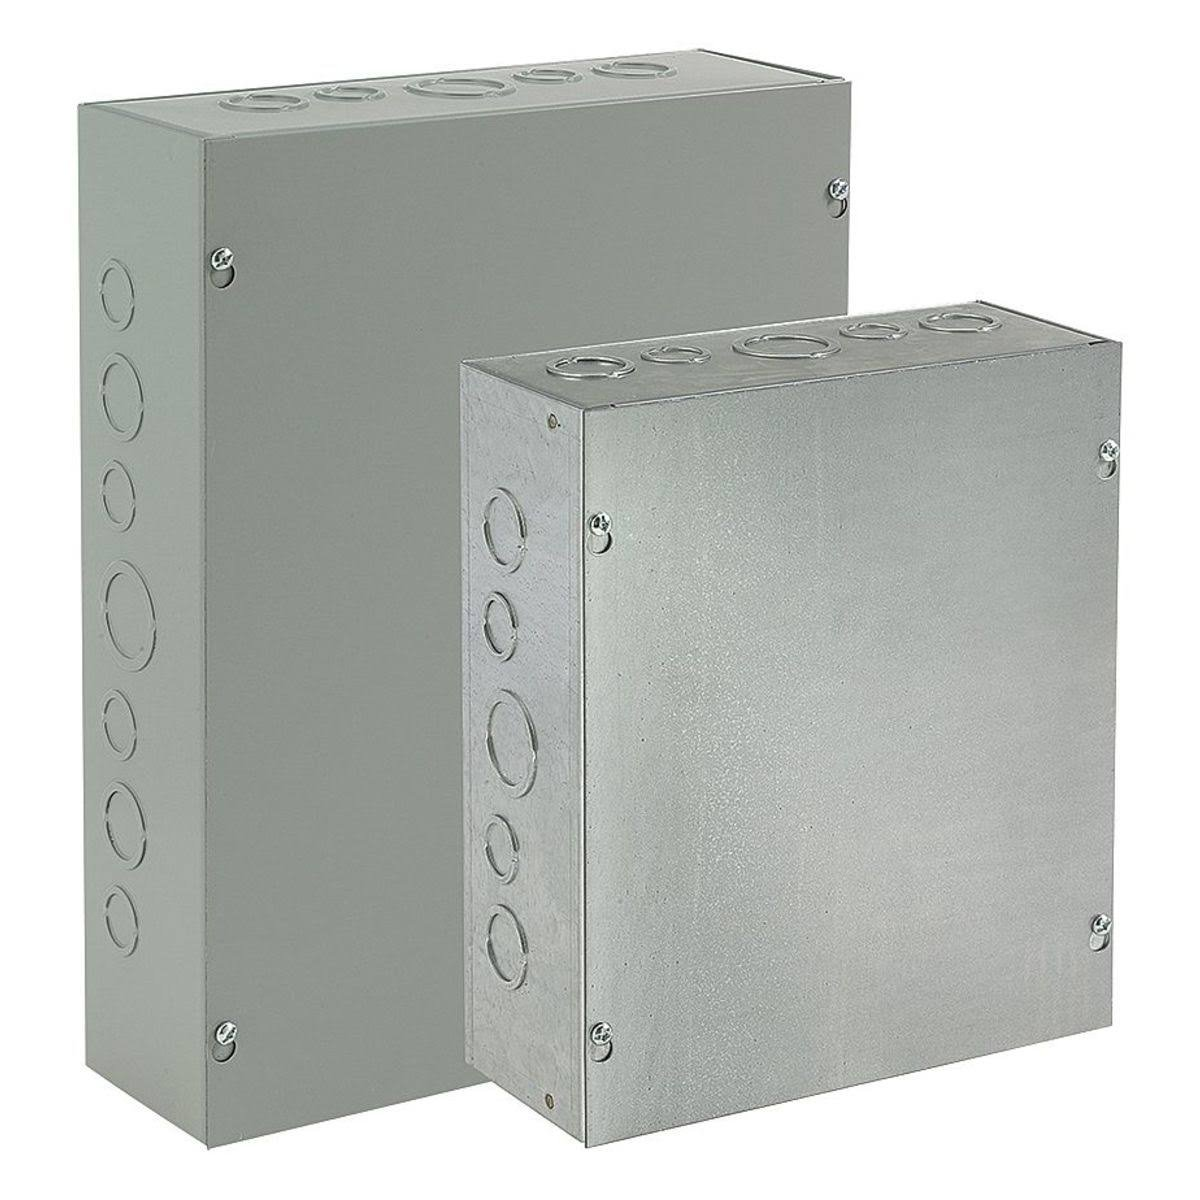 Hoffman ASE6X6X4 Pull Box, Screw Cover with Knockouts, Steel, 6'' x 6'' x 4'', Gray